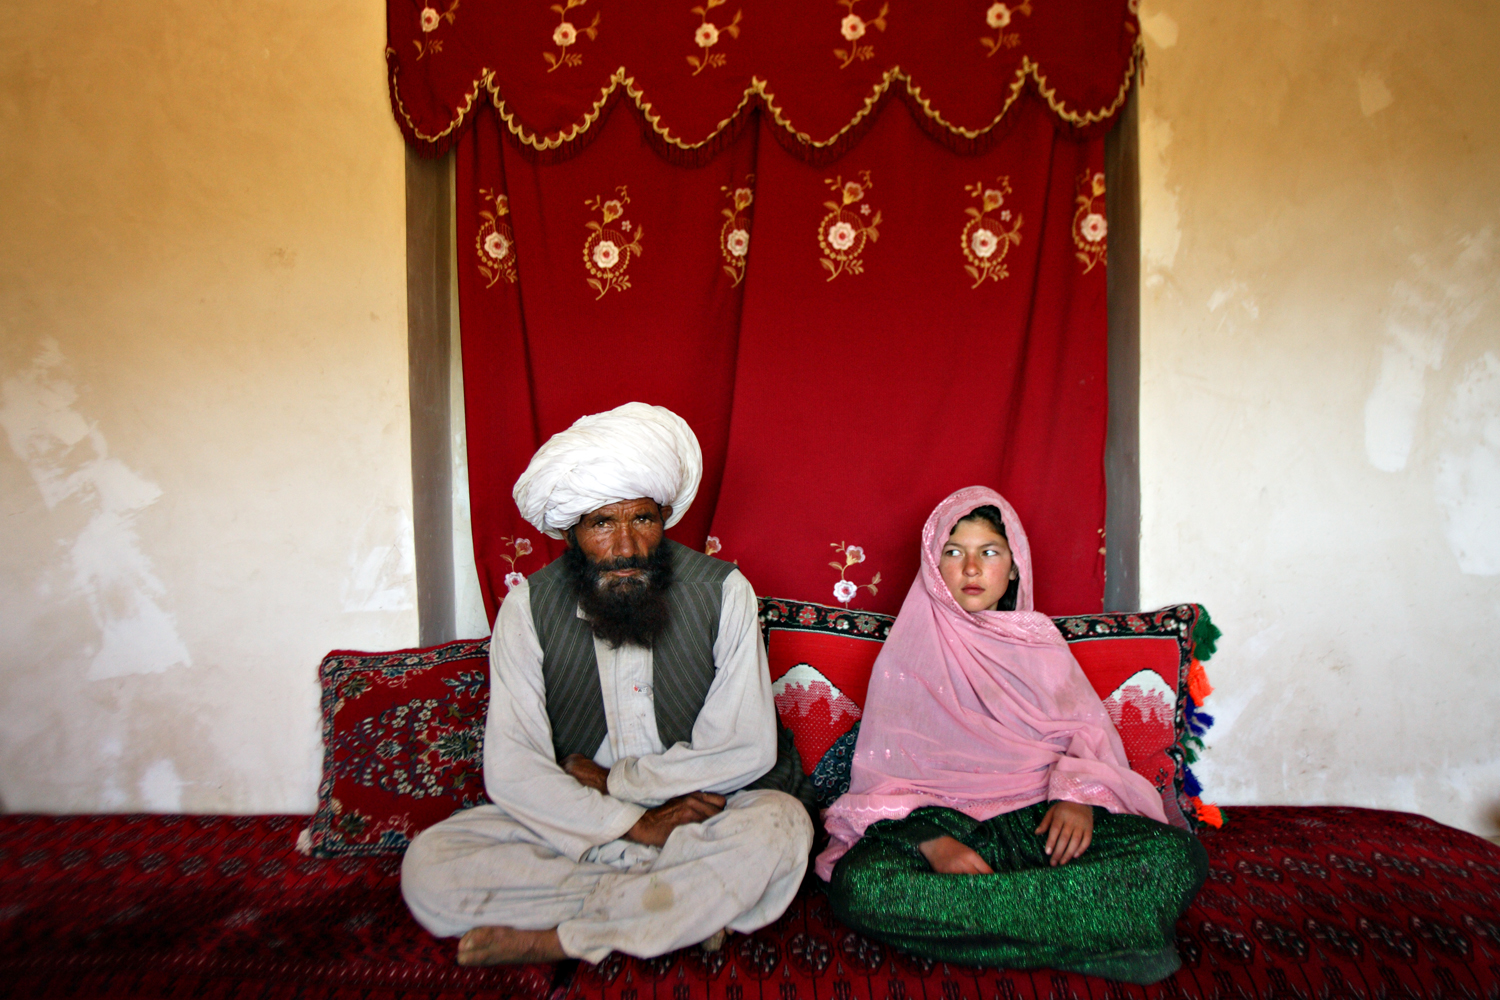 Faiz, 40, and Ghulam, 11, sit in their home prior to their wedding in rural Afghanistan. Sept. 11, 2005.                                                                                             (WPP 1st prize, contemporary issues/ stories , 2012)